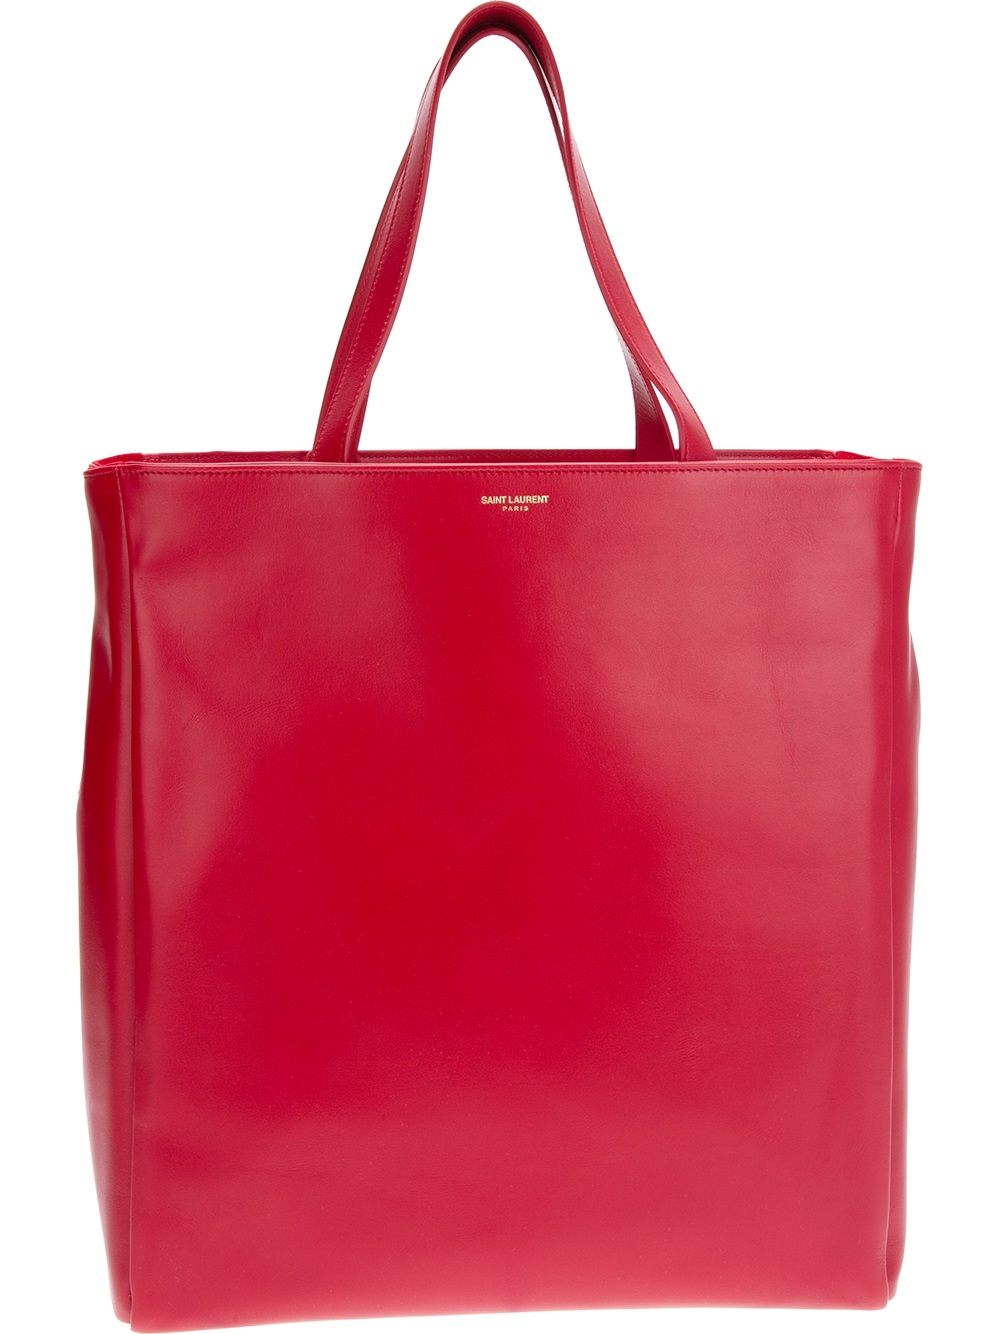 saint laurent classic shopper tote in red lyst. Black Bedroom Furniture Sets. Home Design Ideas